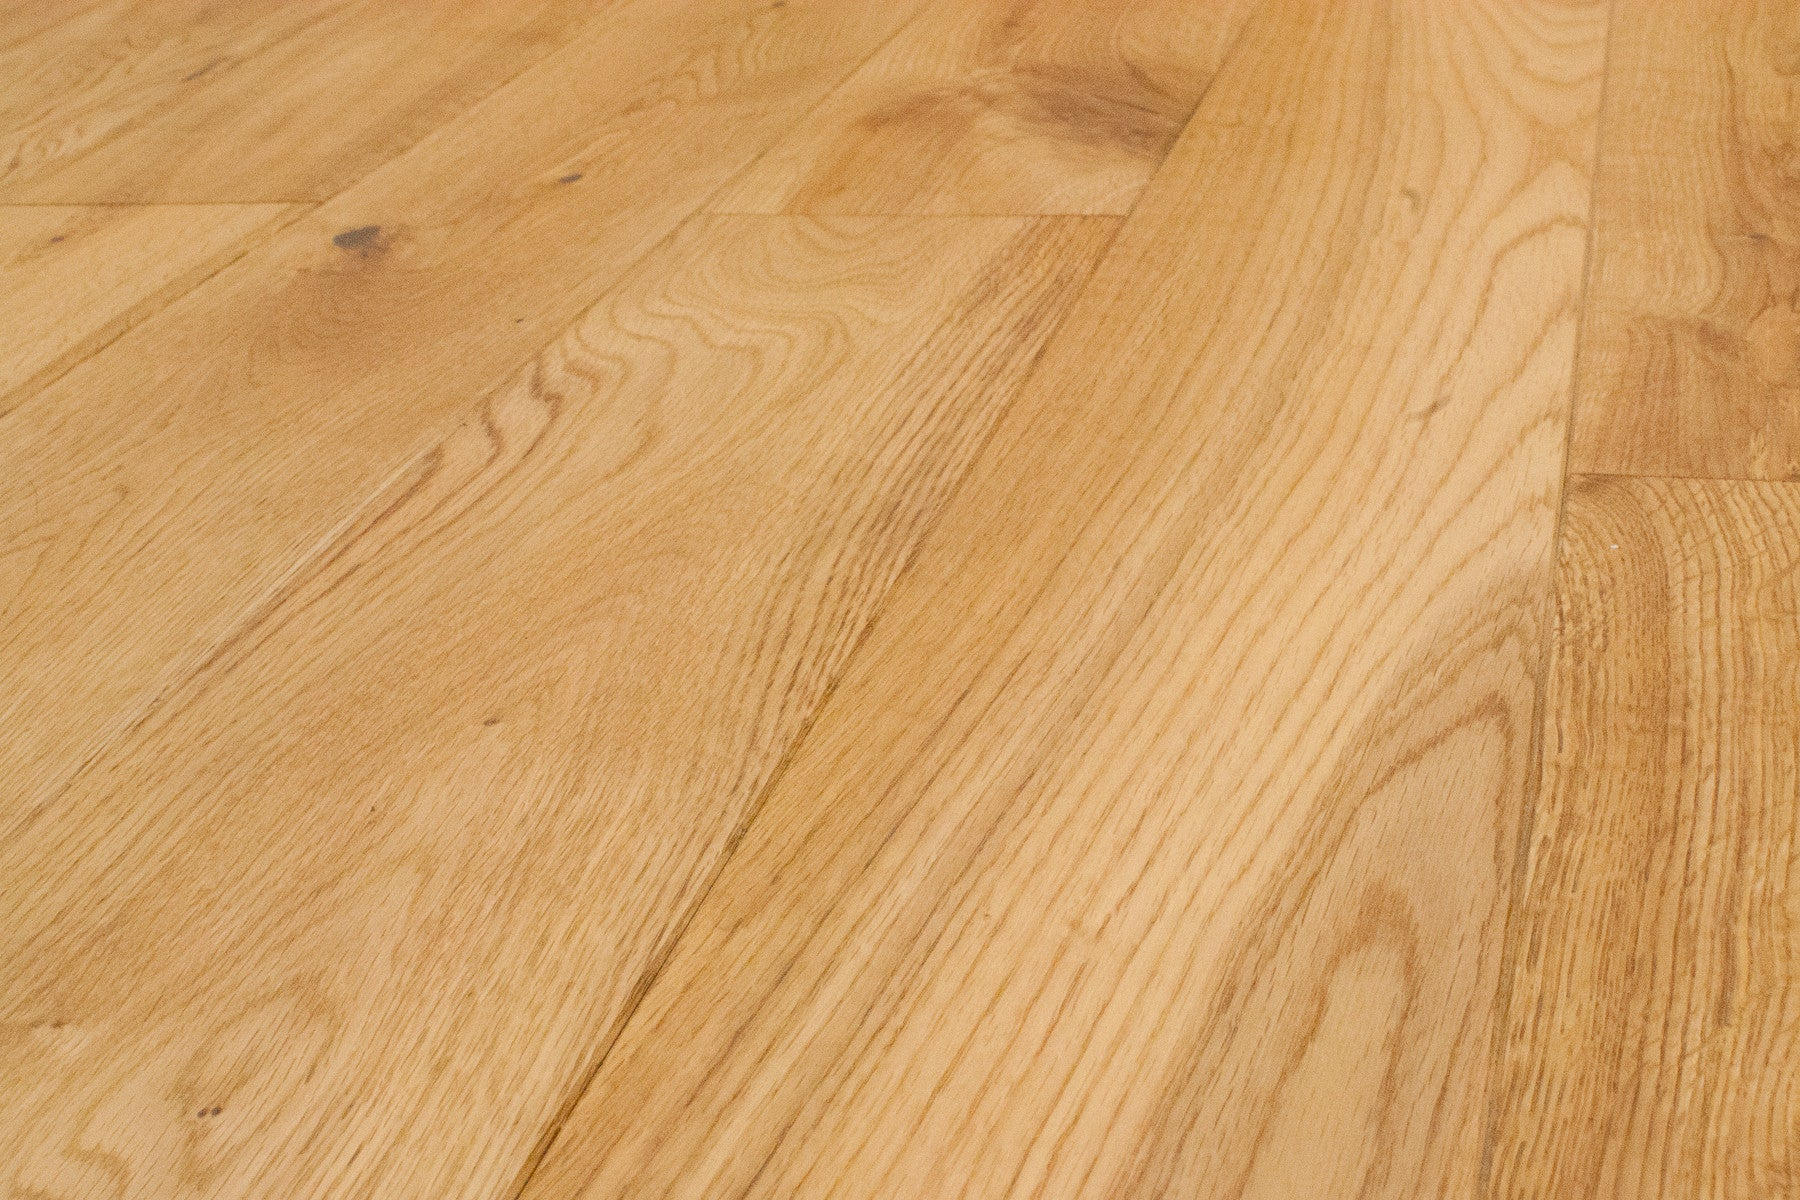 Natural Oak European White Oak Solid Hardwood Easiklip Floors - Who installs hardwood floors